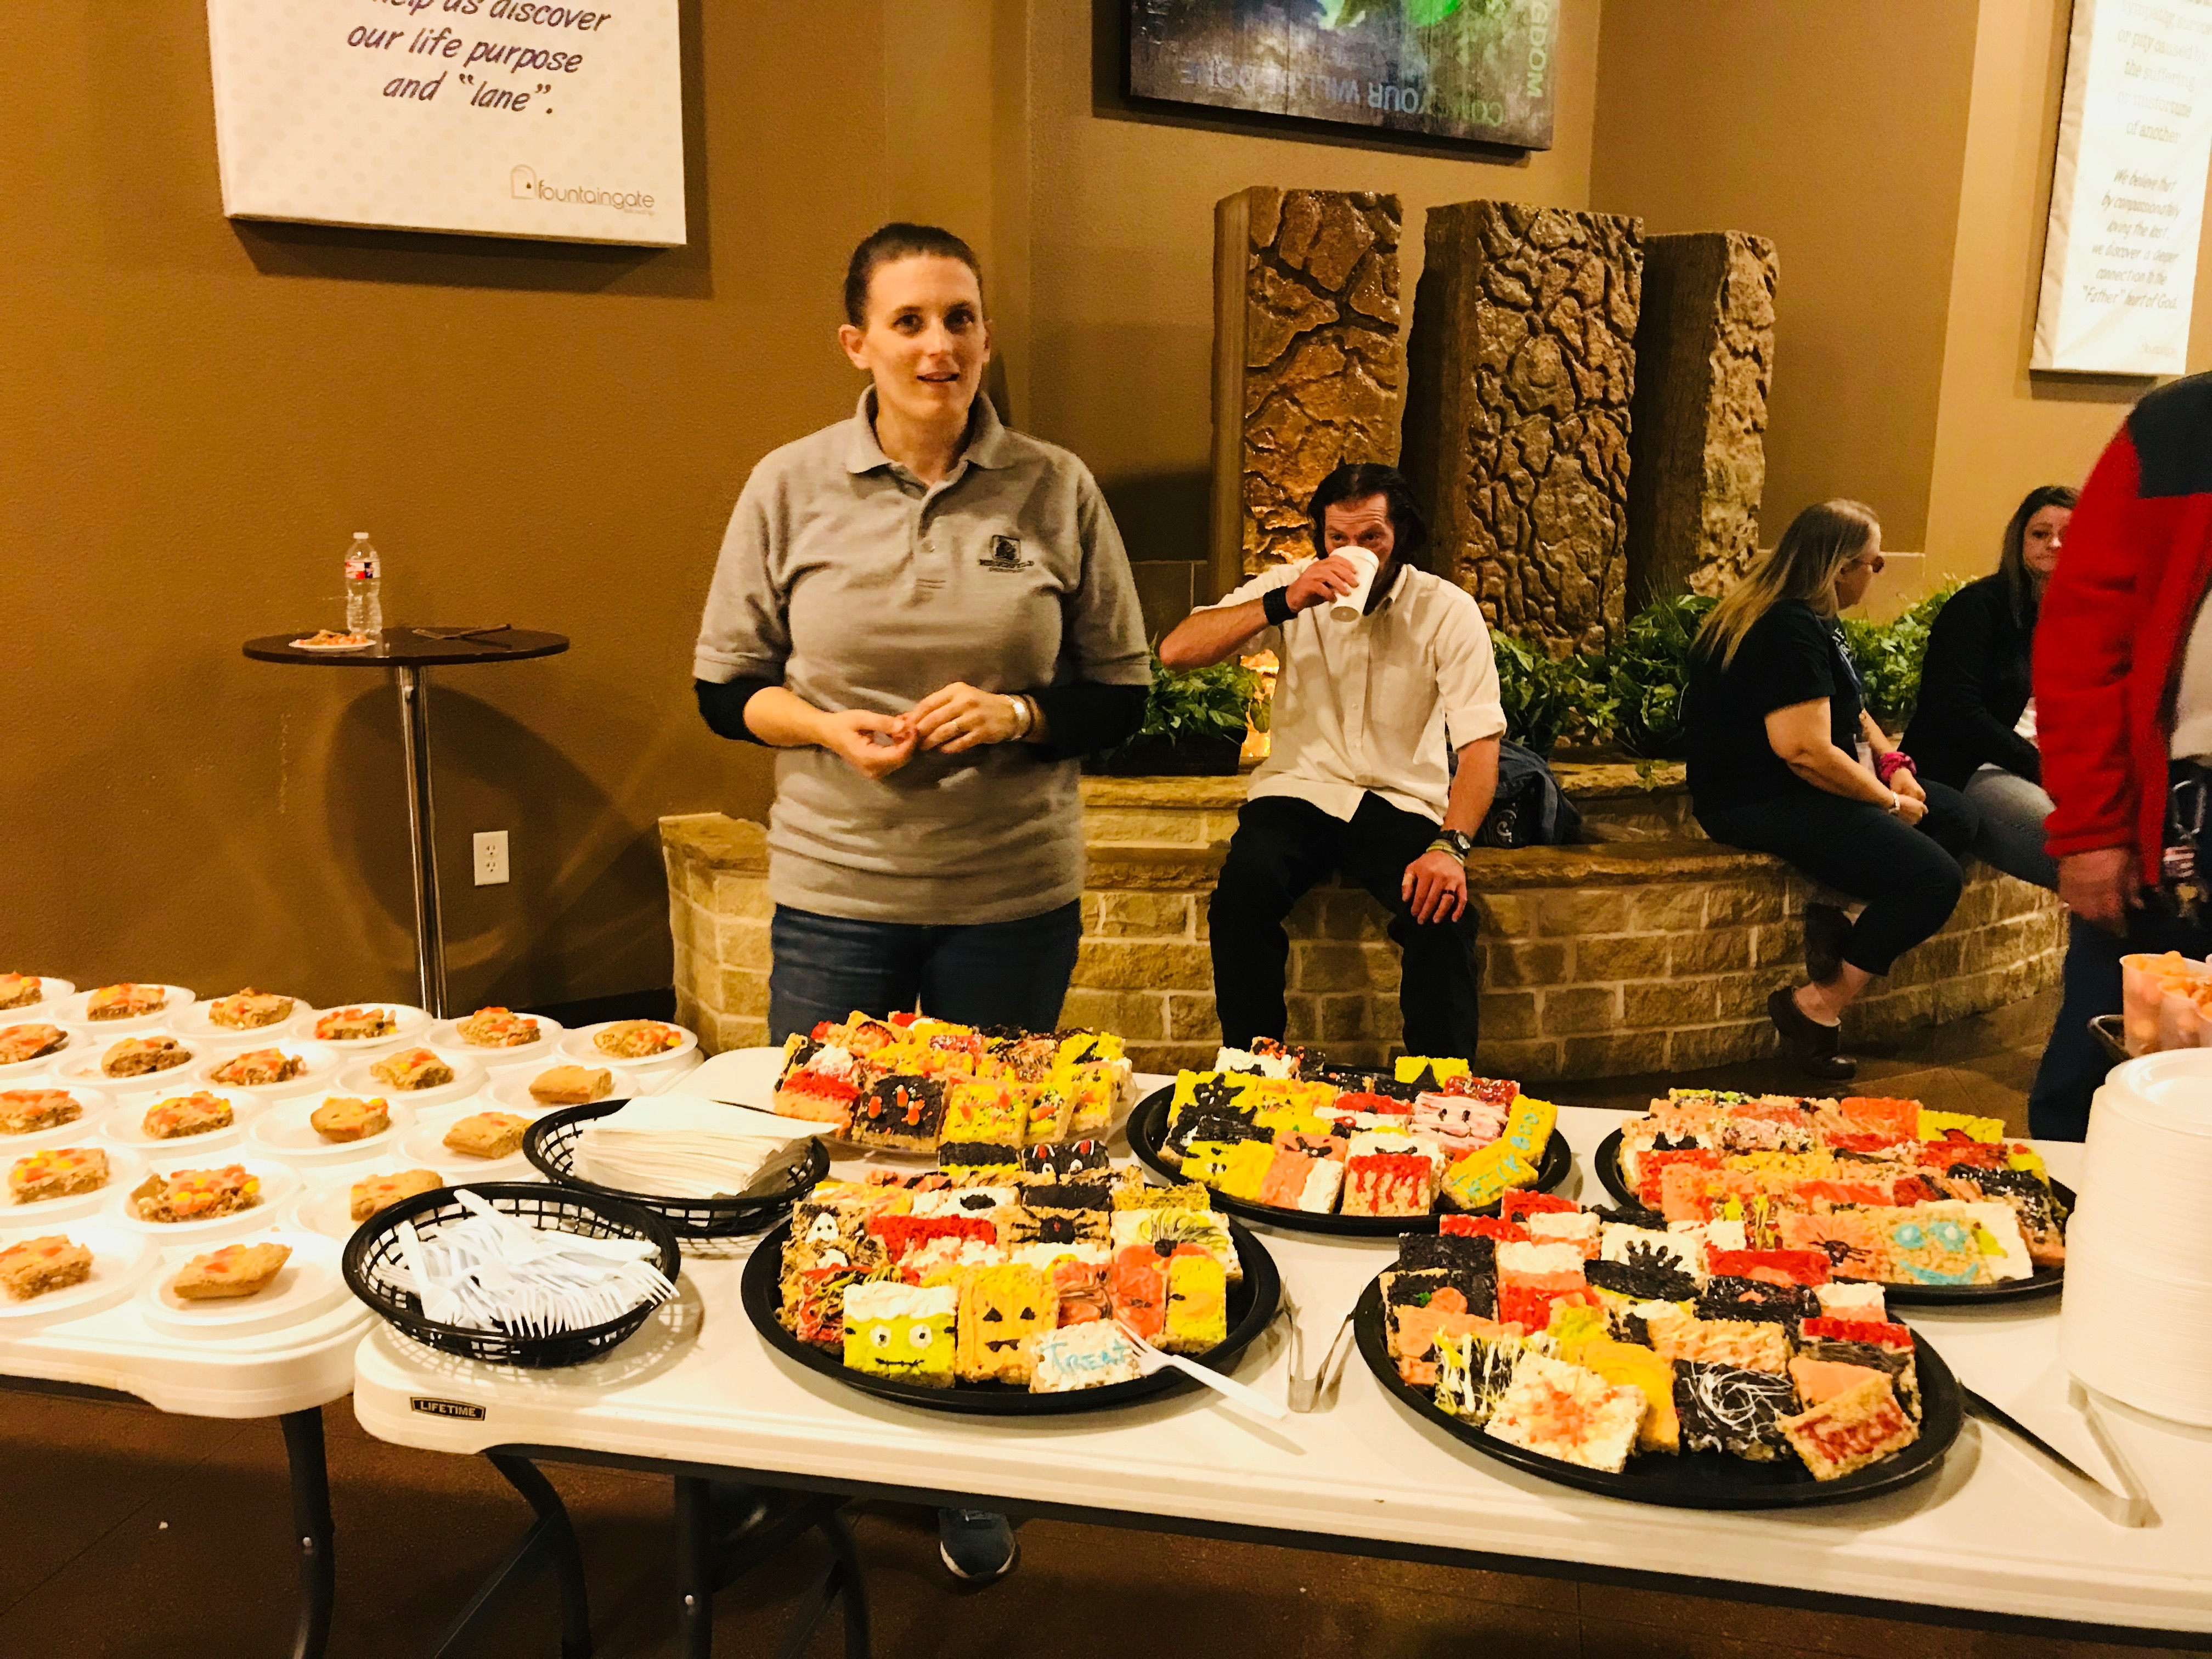 celebrate recovery dinner